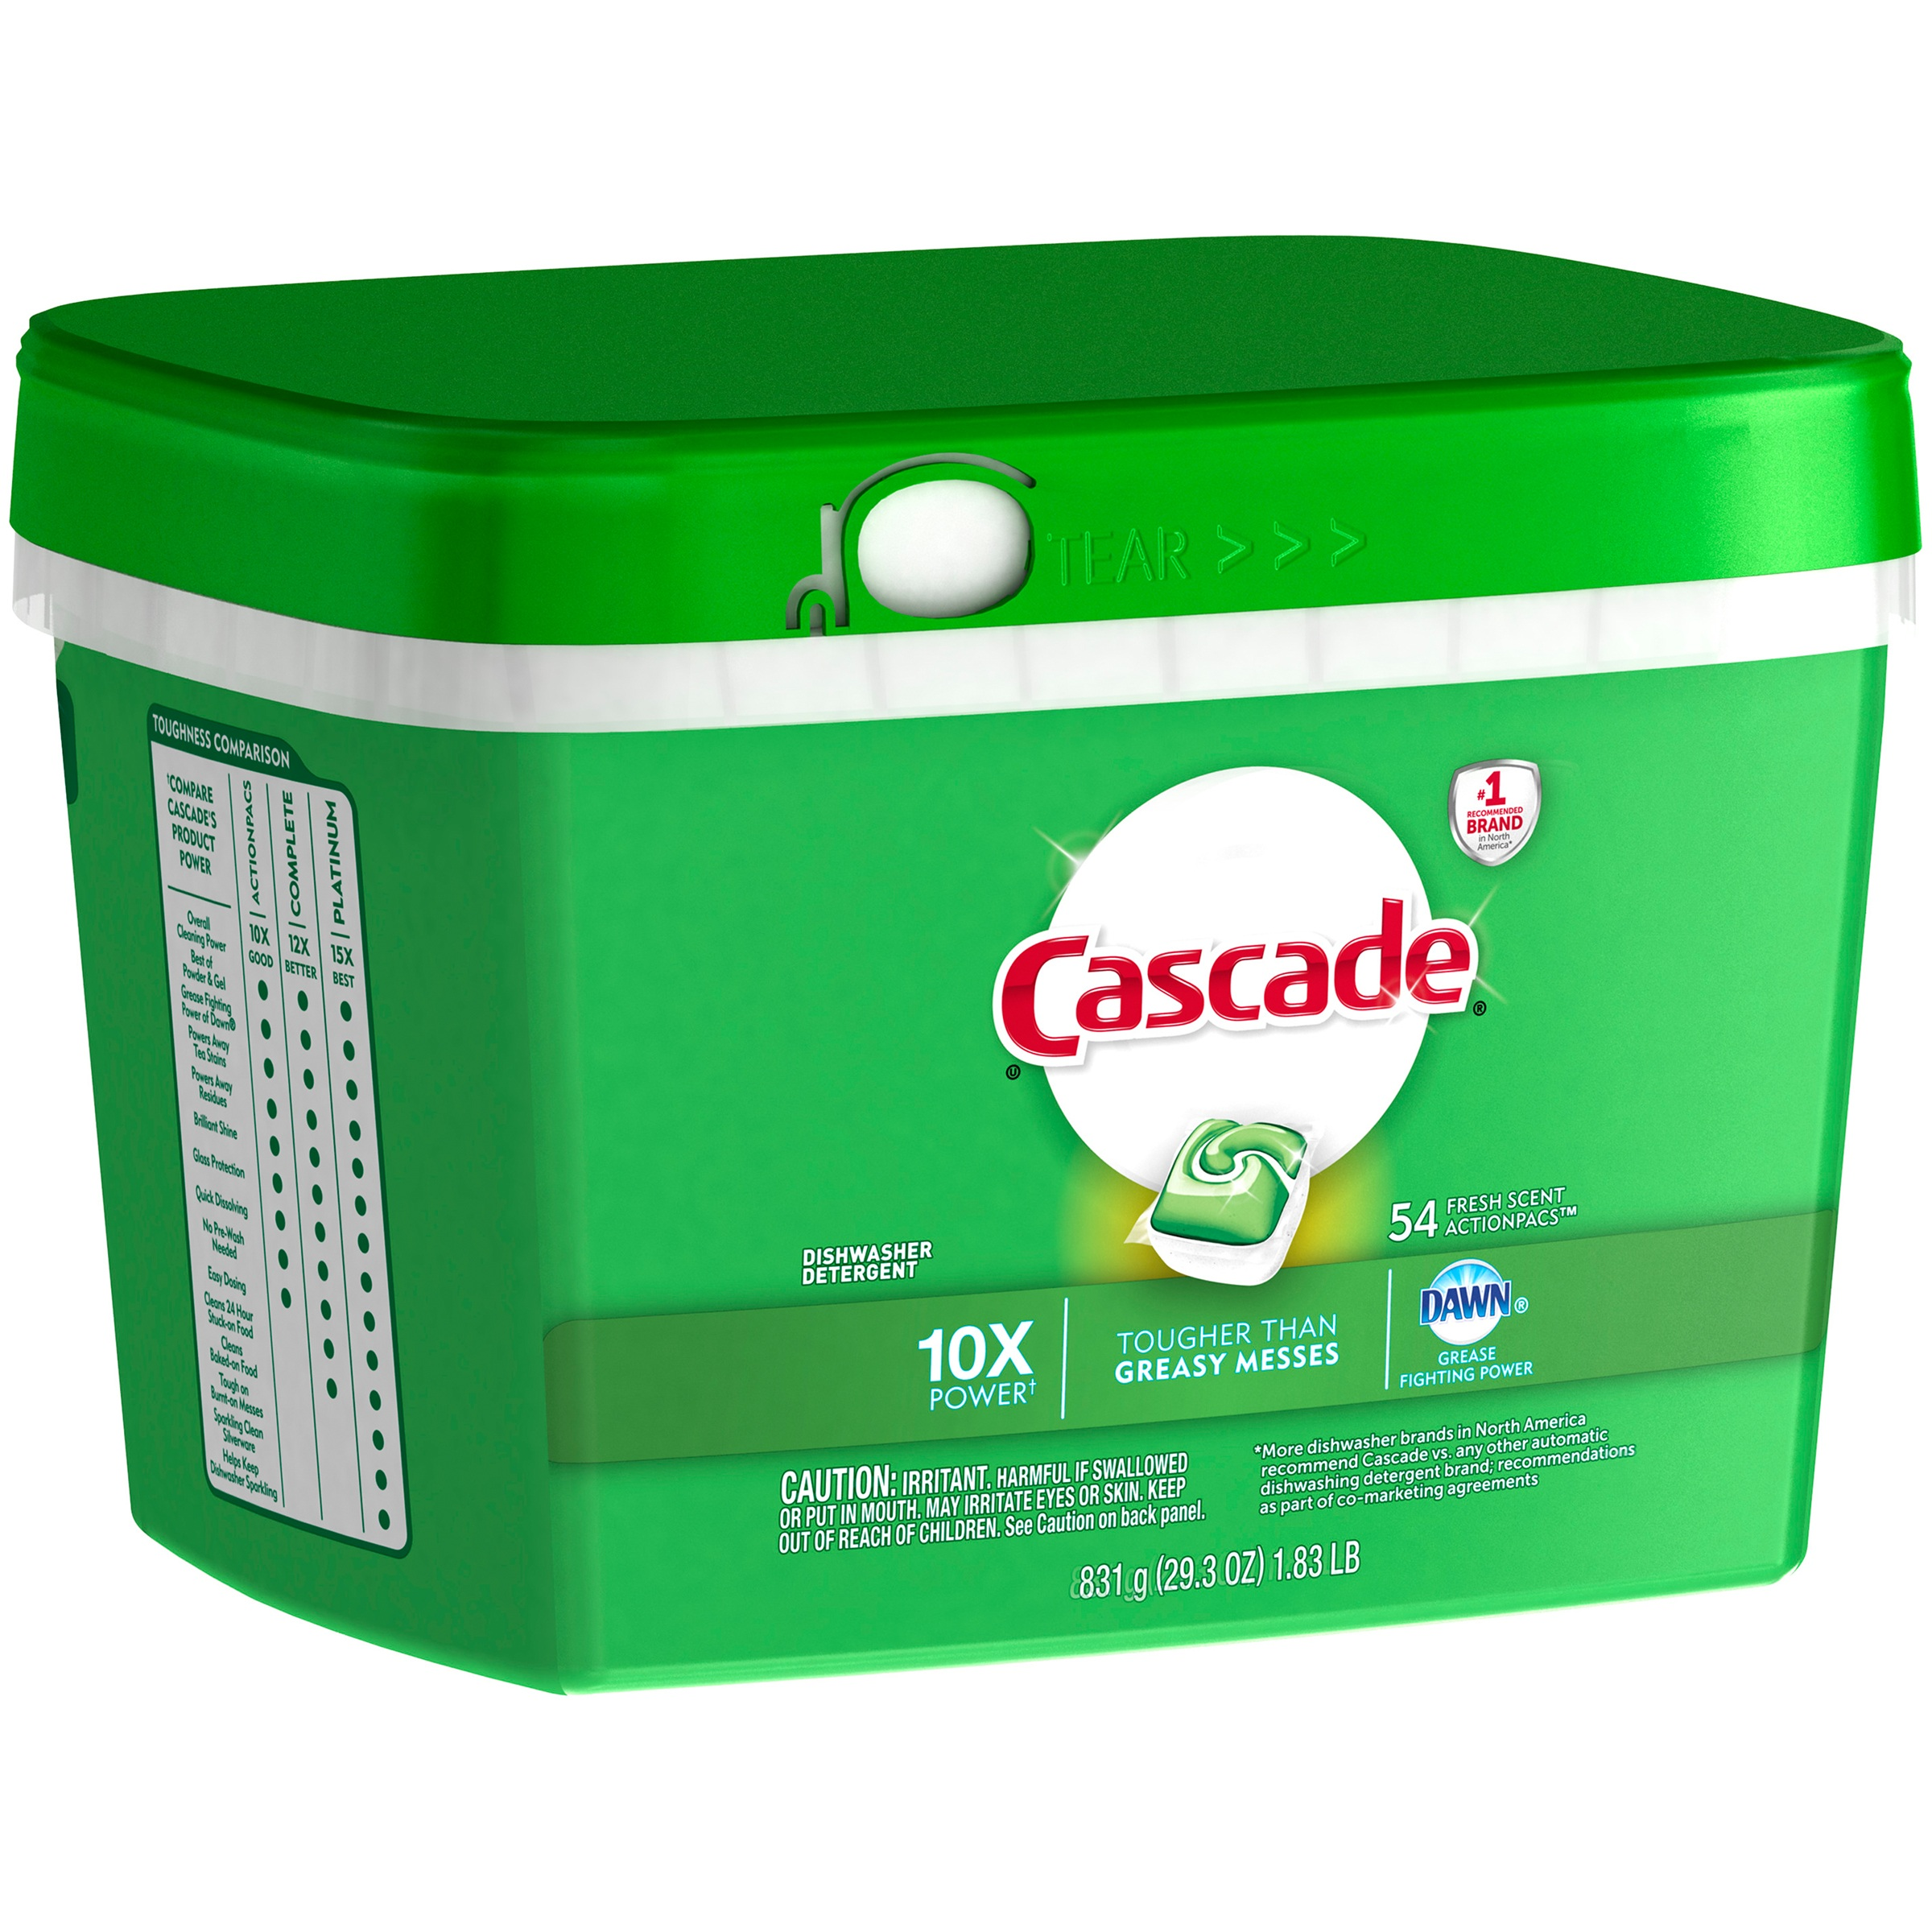 Cascade ActionPacs Fresh Scent Dishwasher Detergent, 54 Count